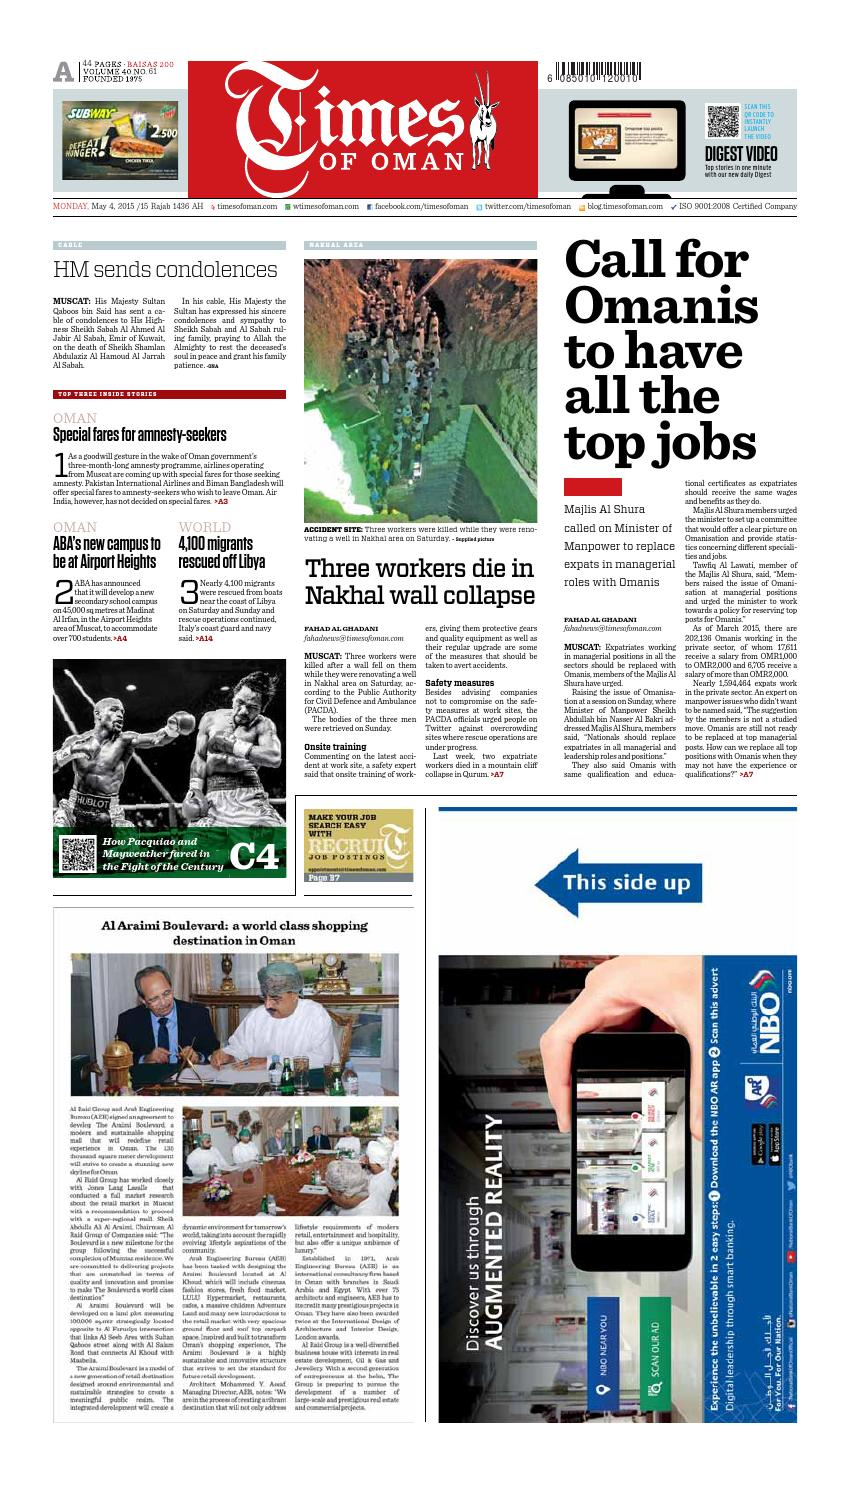 Times of Oman - May 4, 2015 by Muscat Media Group - issuu